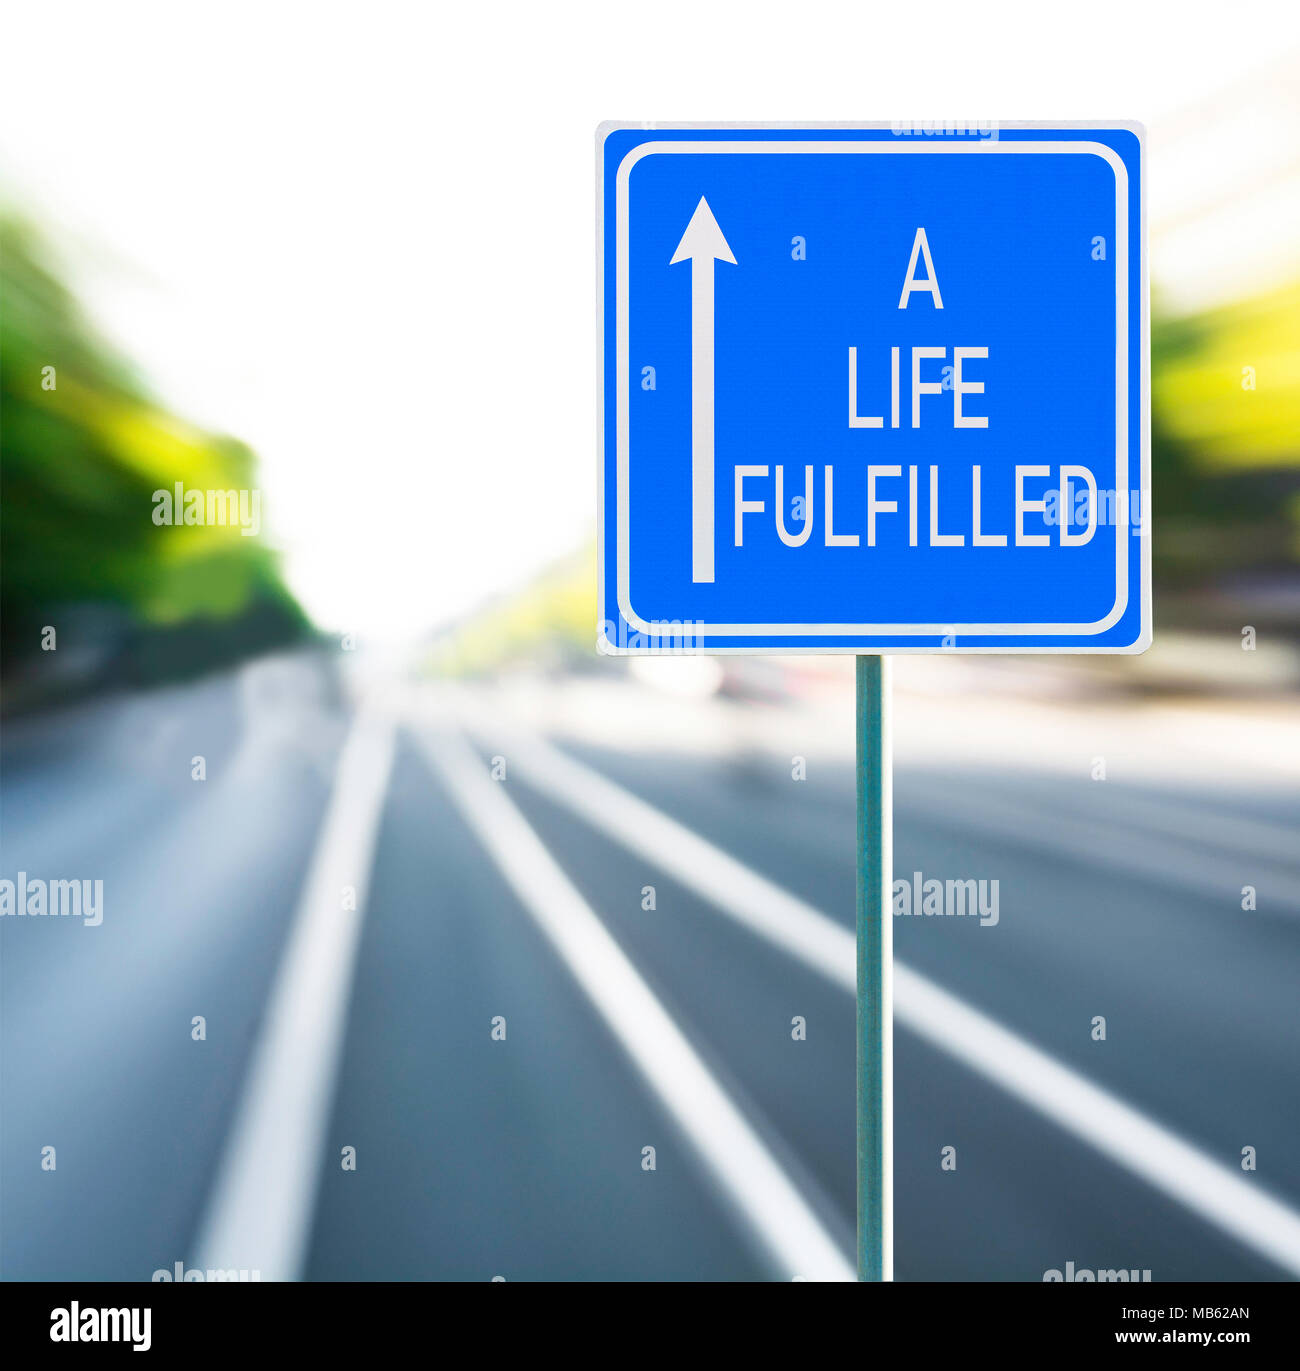 A life fulfilled motivational phrase on blue road sign with arrow and blurred speedy background. Copy space. - Stock Image